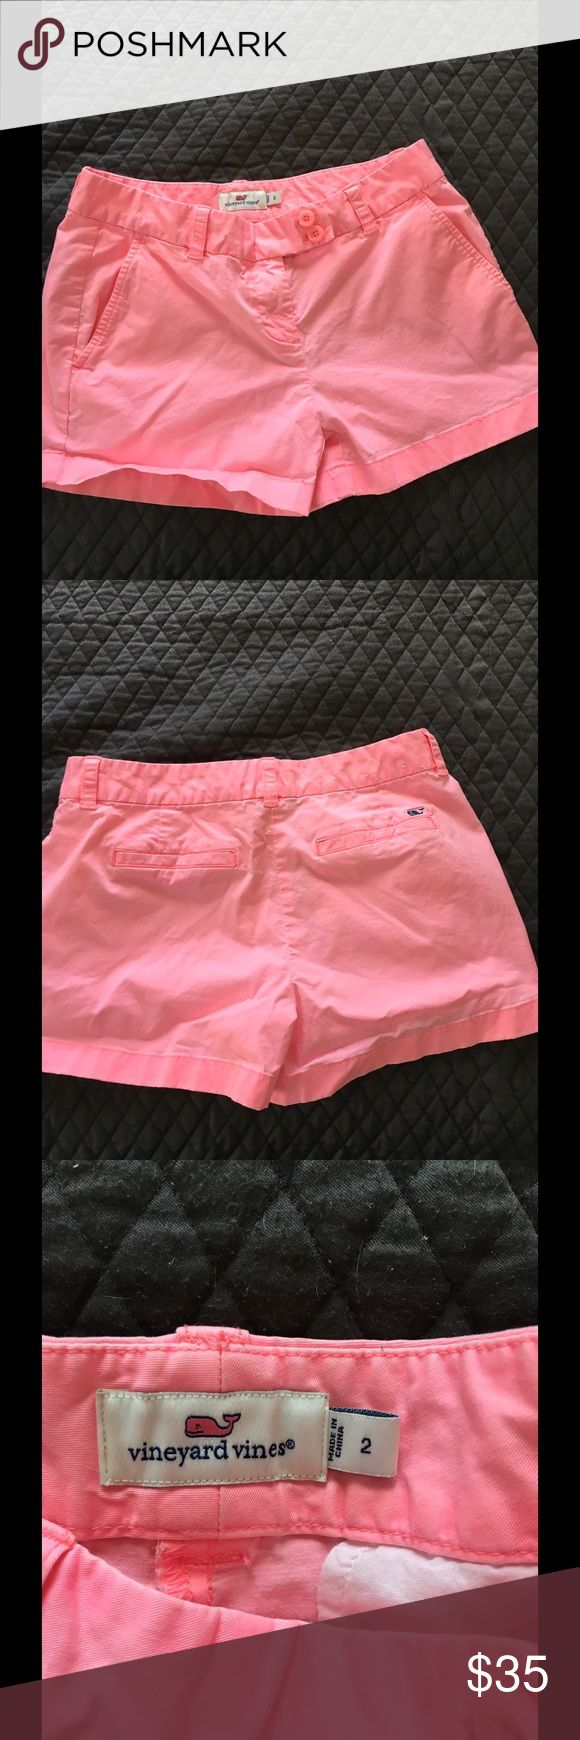 Vineyard vines shorts Great condition vineyard vines from actual retail store, not outlet!! Vineyard Vines Shorts